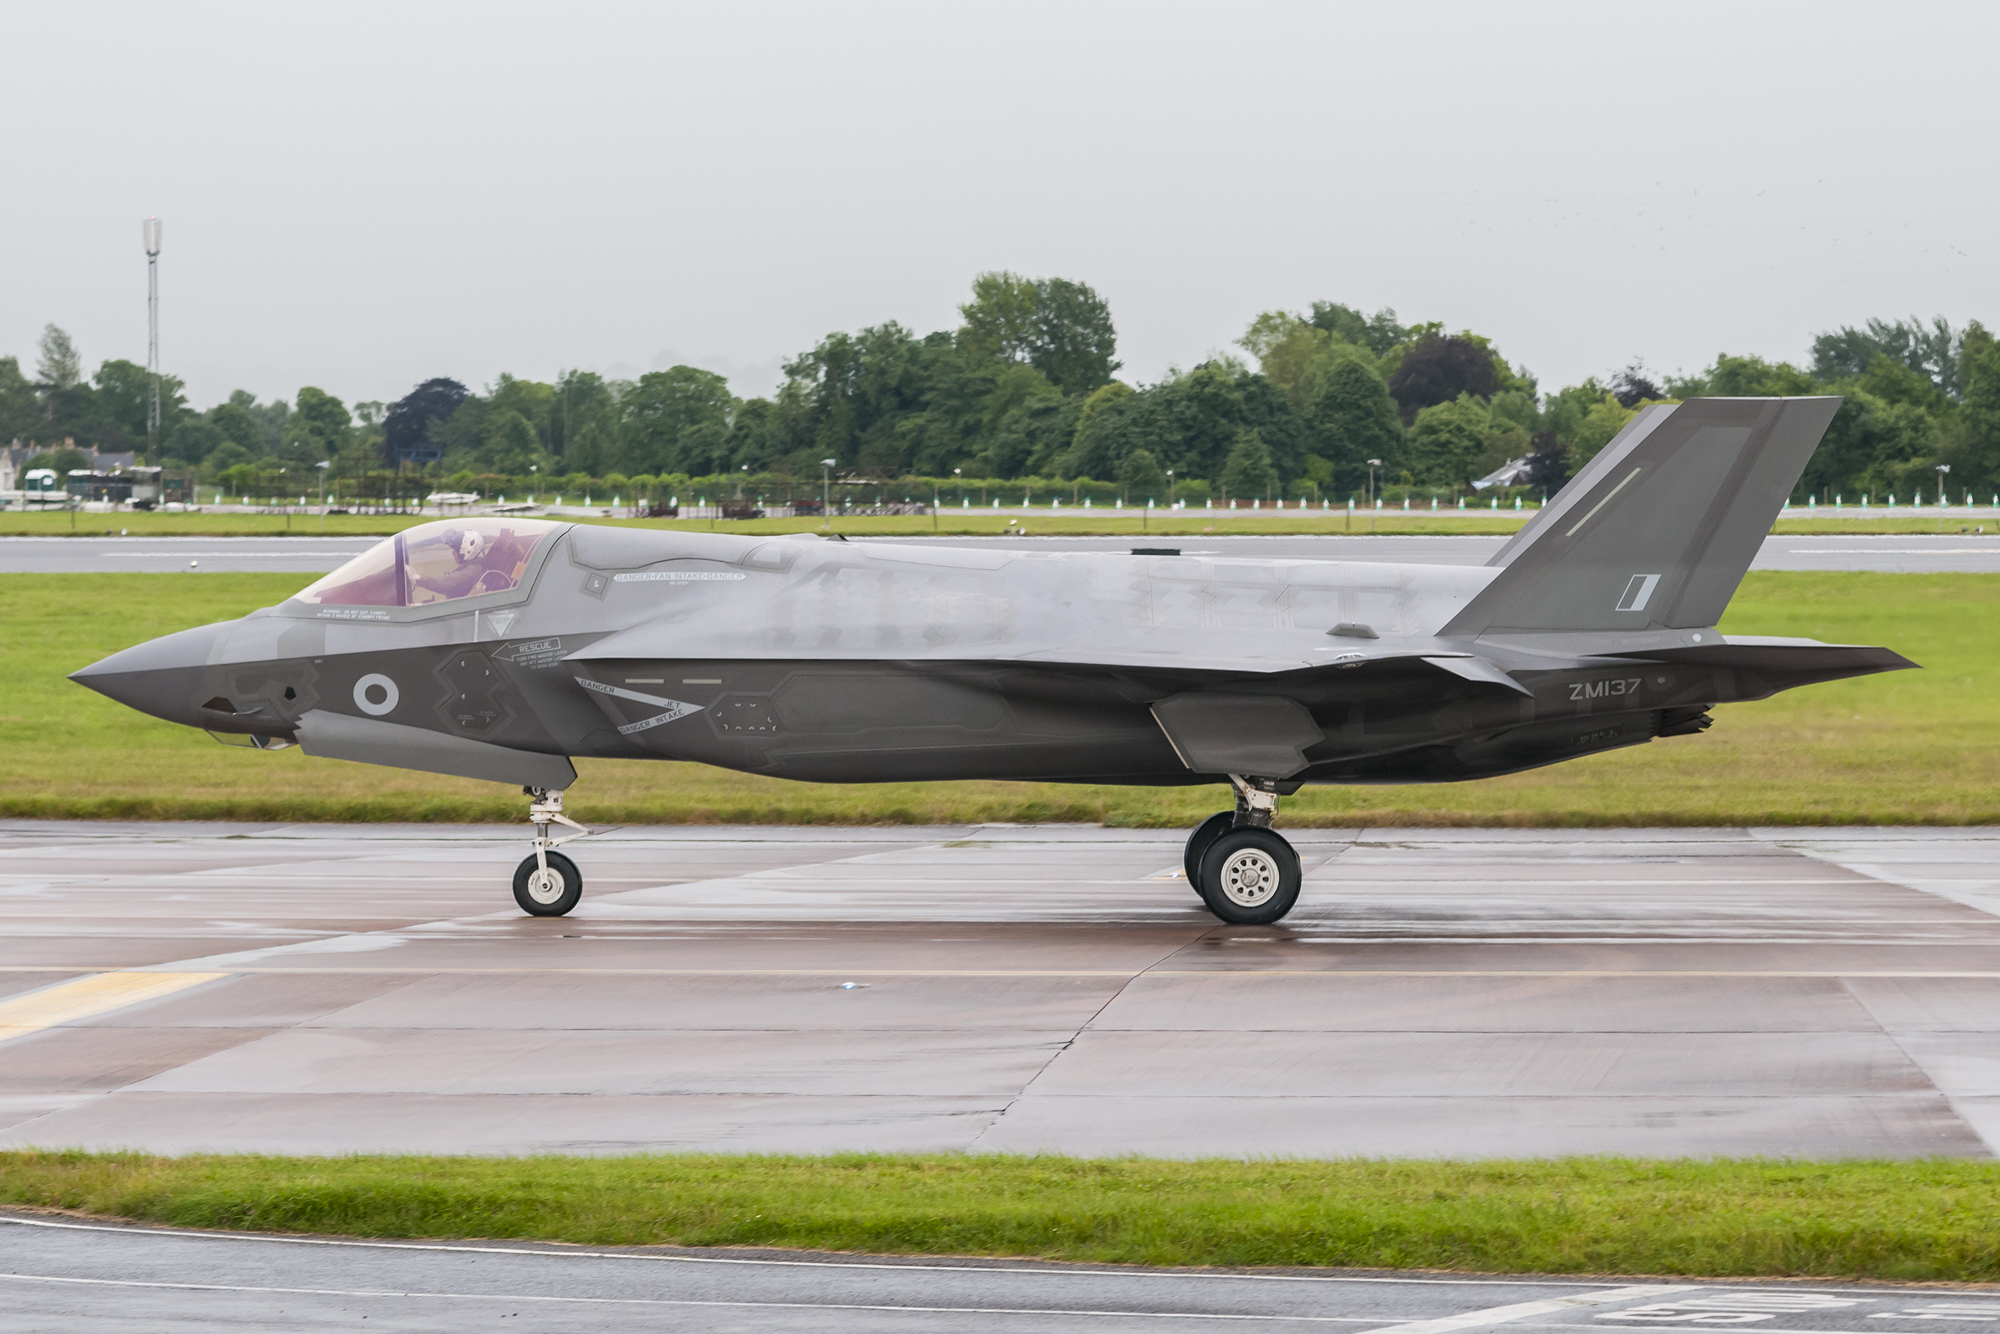 © Duncan Monk - RAF F-35B ZM137 - First F-35 Lightning IIs arrive in United Kingdom